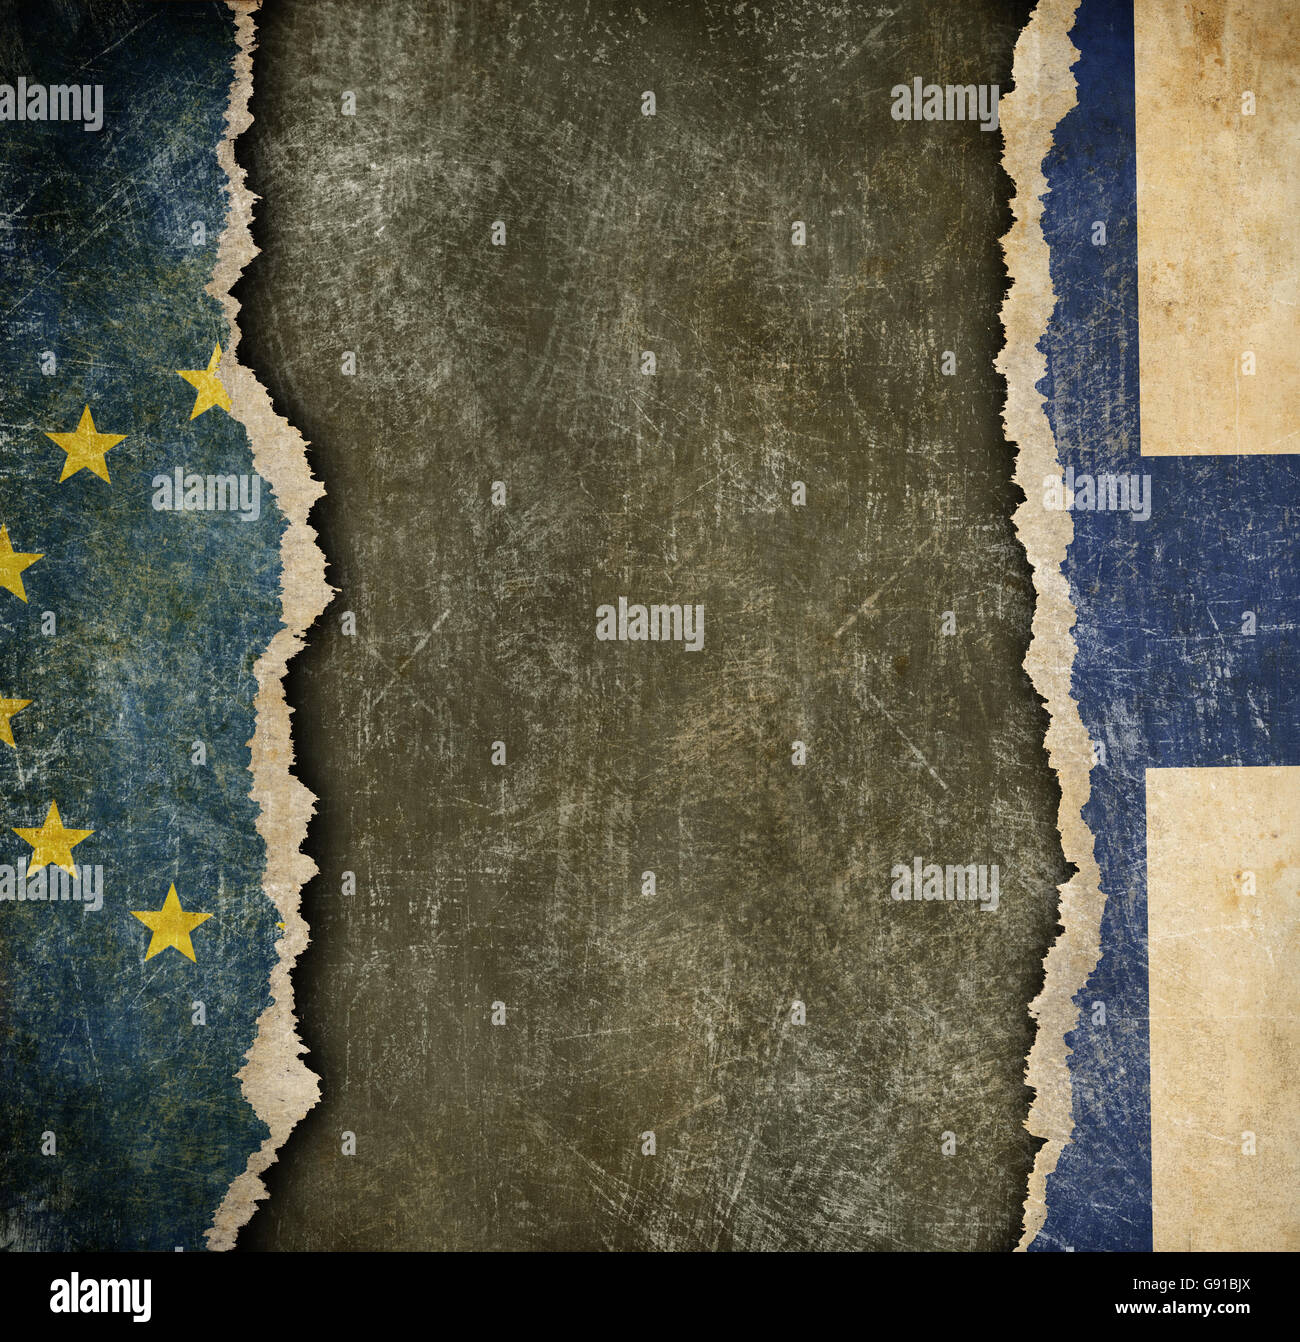 Finland withdrawal from European union fixit concept - Stock Image